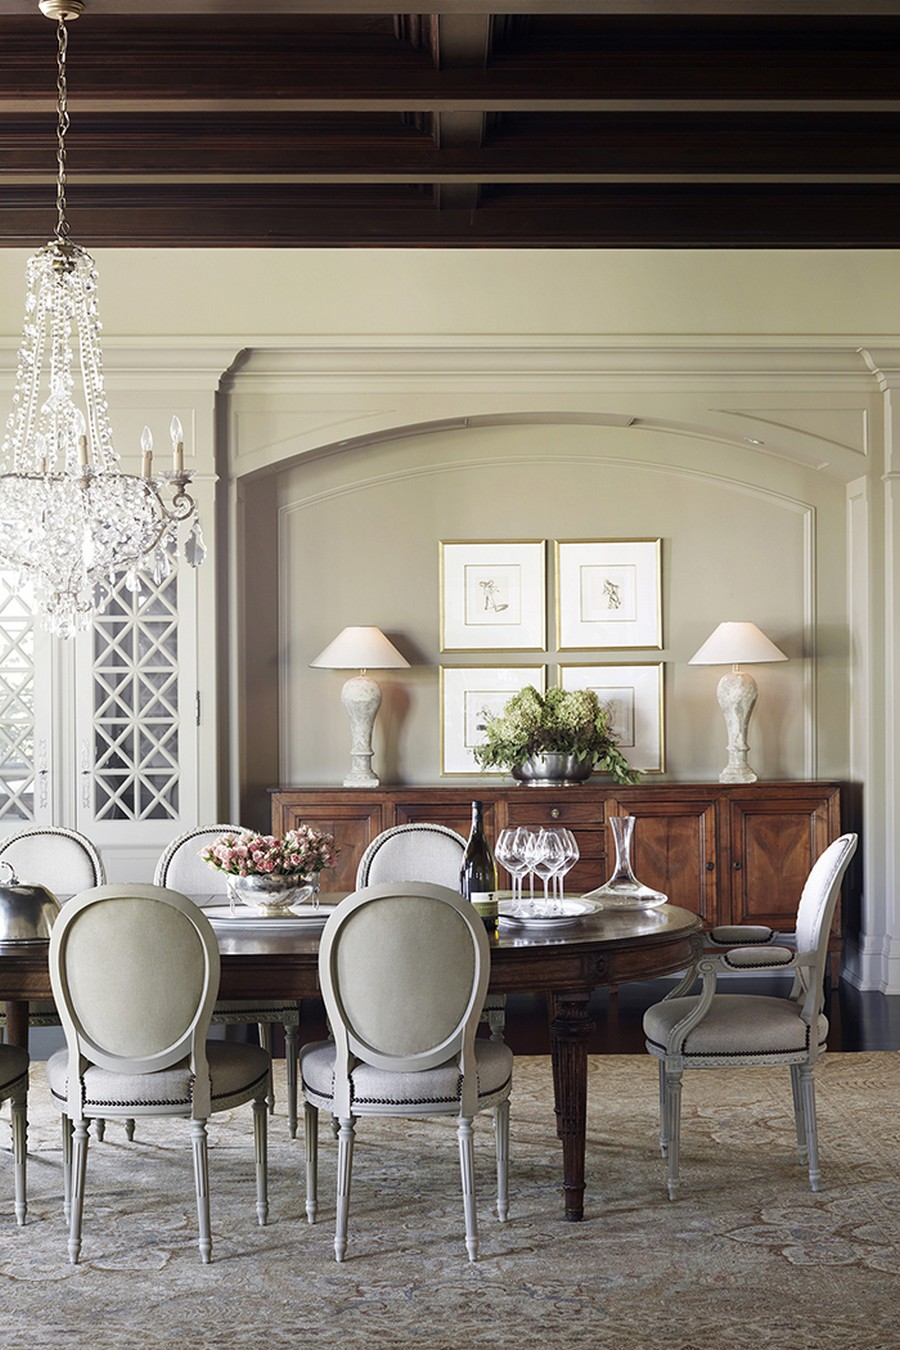 7 High-End Dining Room Design Ideas Perfect For Your Home Decor high-end dining room design 7 High-End Dining Room Design Ideas Perfect For Your Home Decor High End Dining Room Design